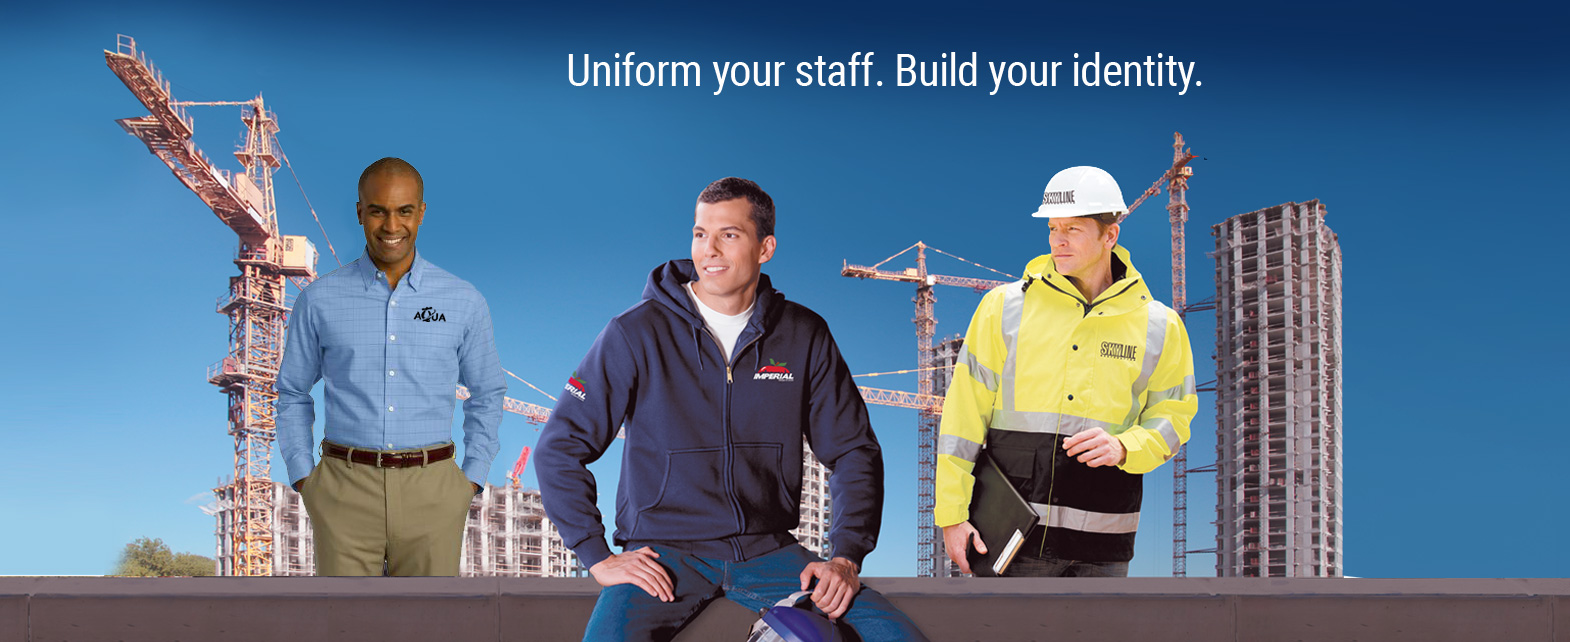 Uniform Your Staff. Build Your Identity.